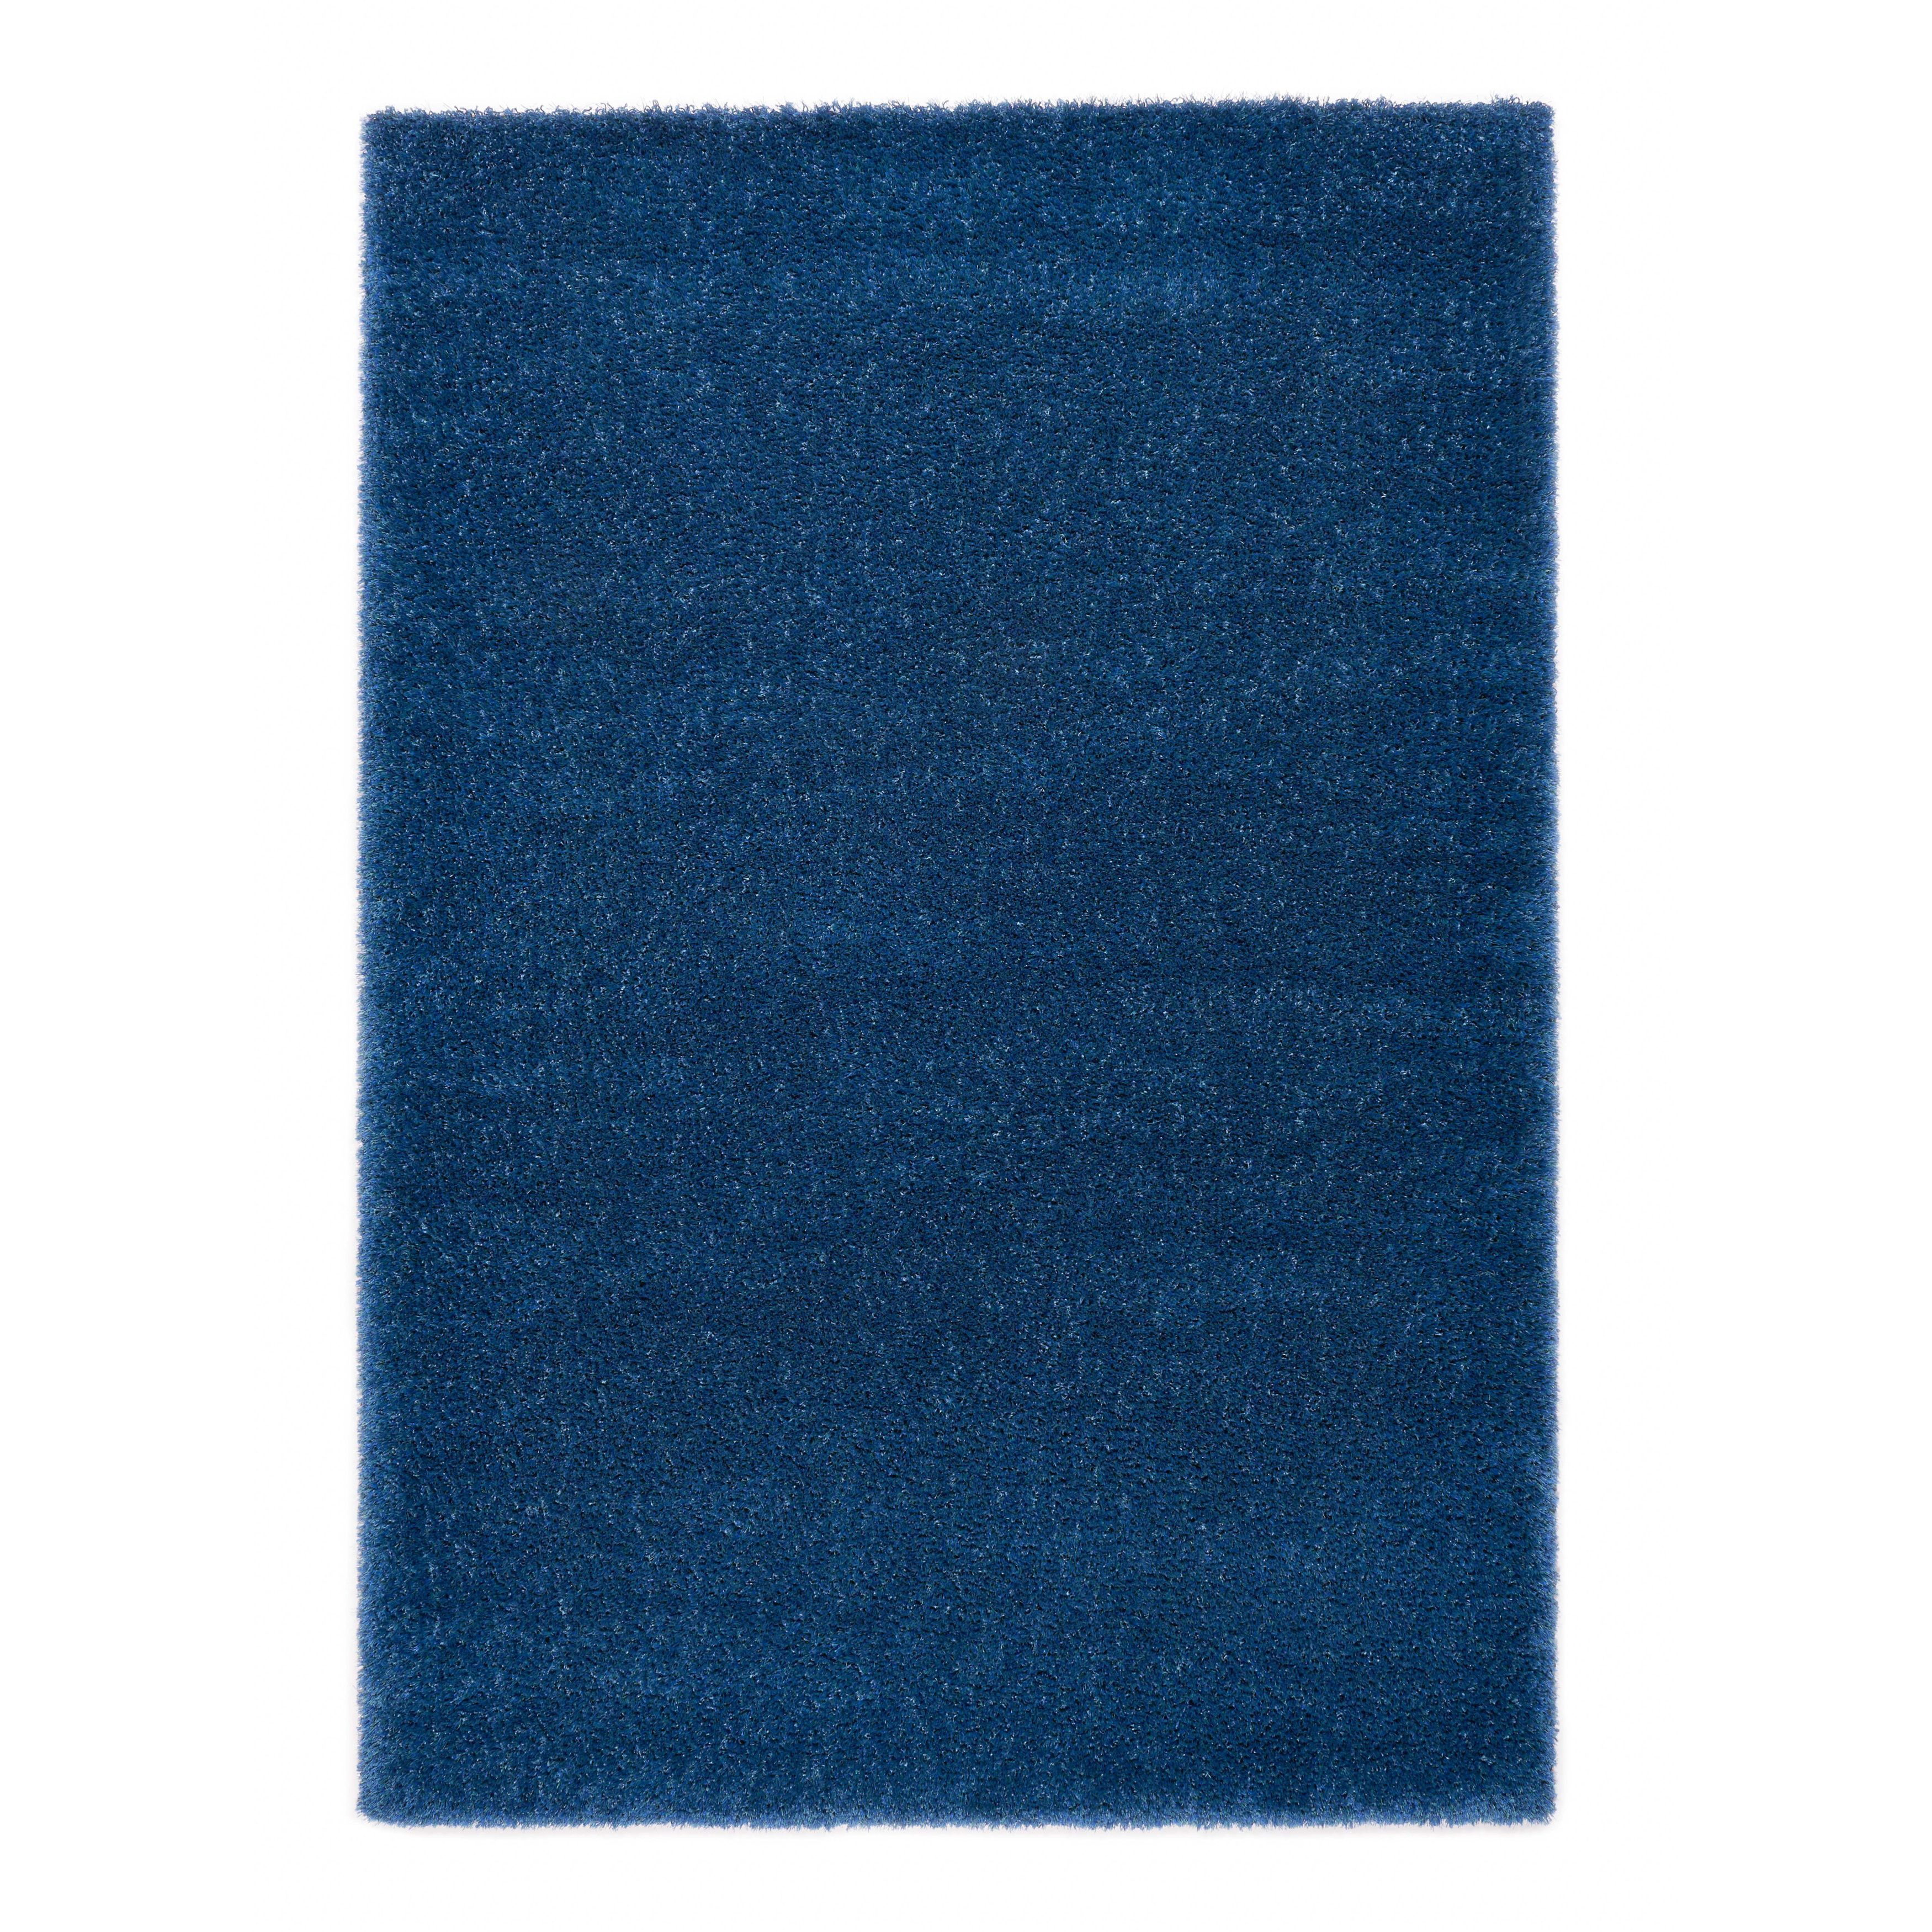 navy rug bright pin rugs area stockholm esalerugs x blue